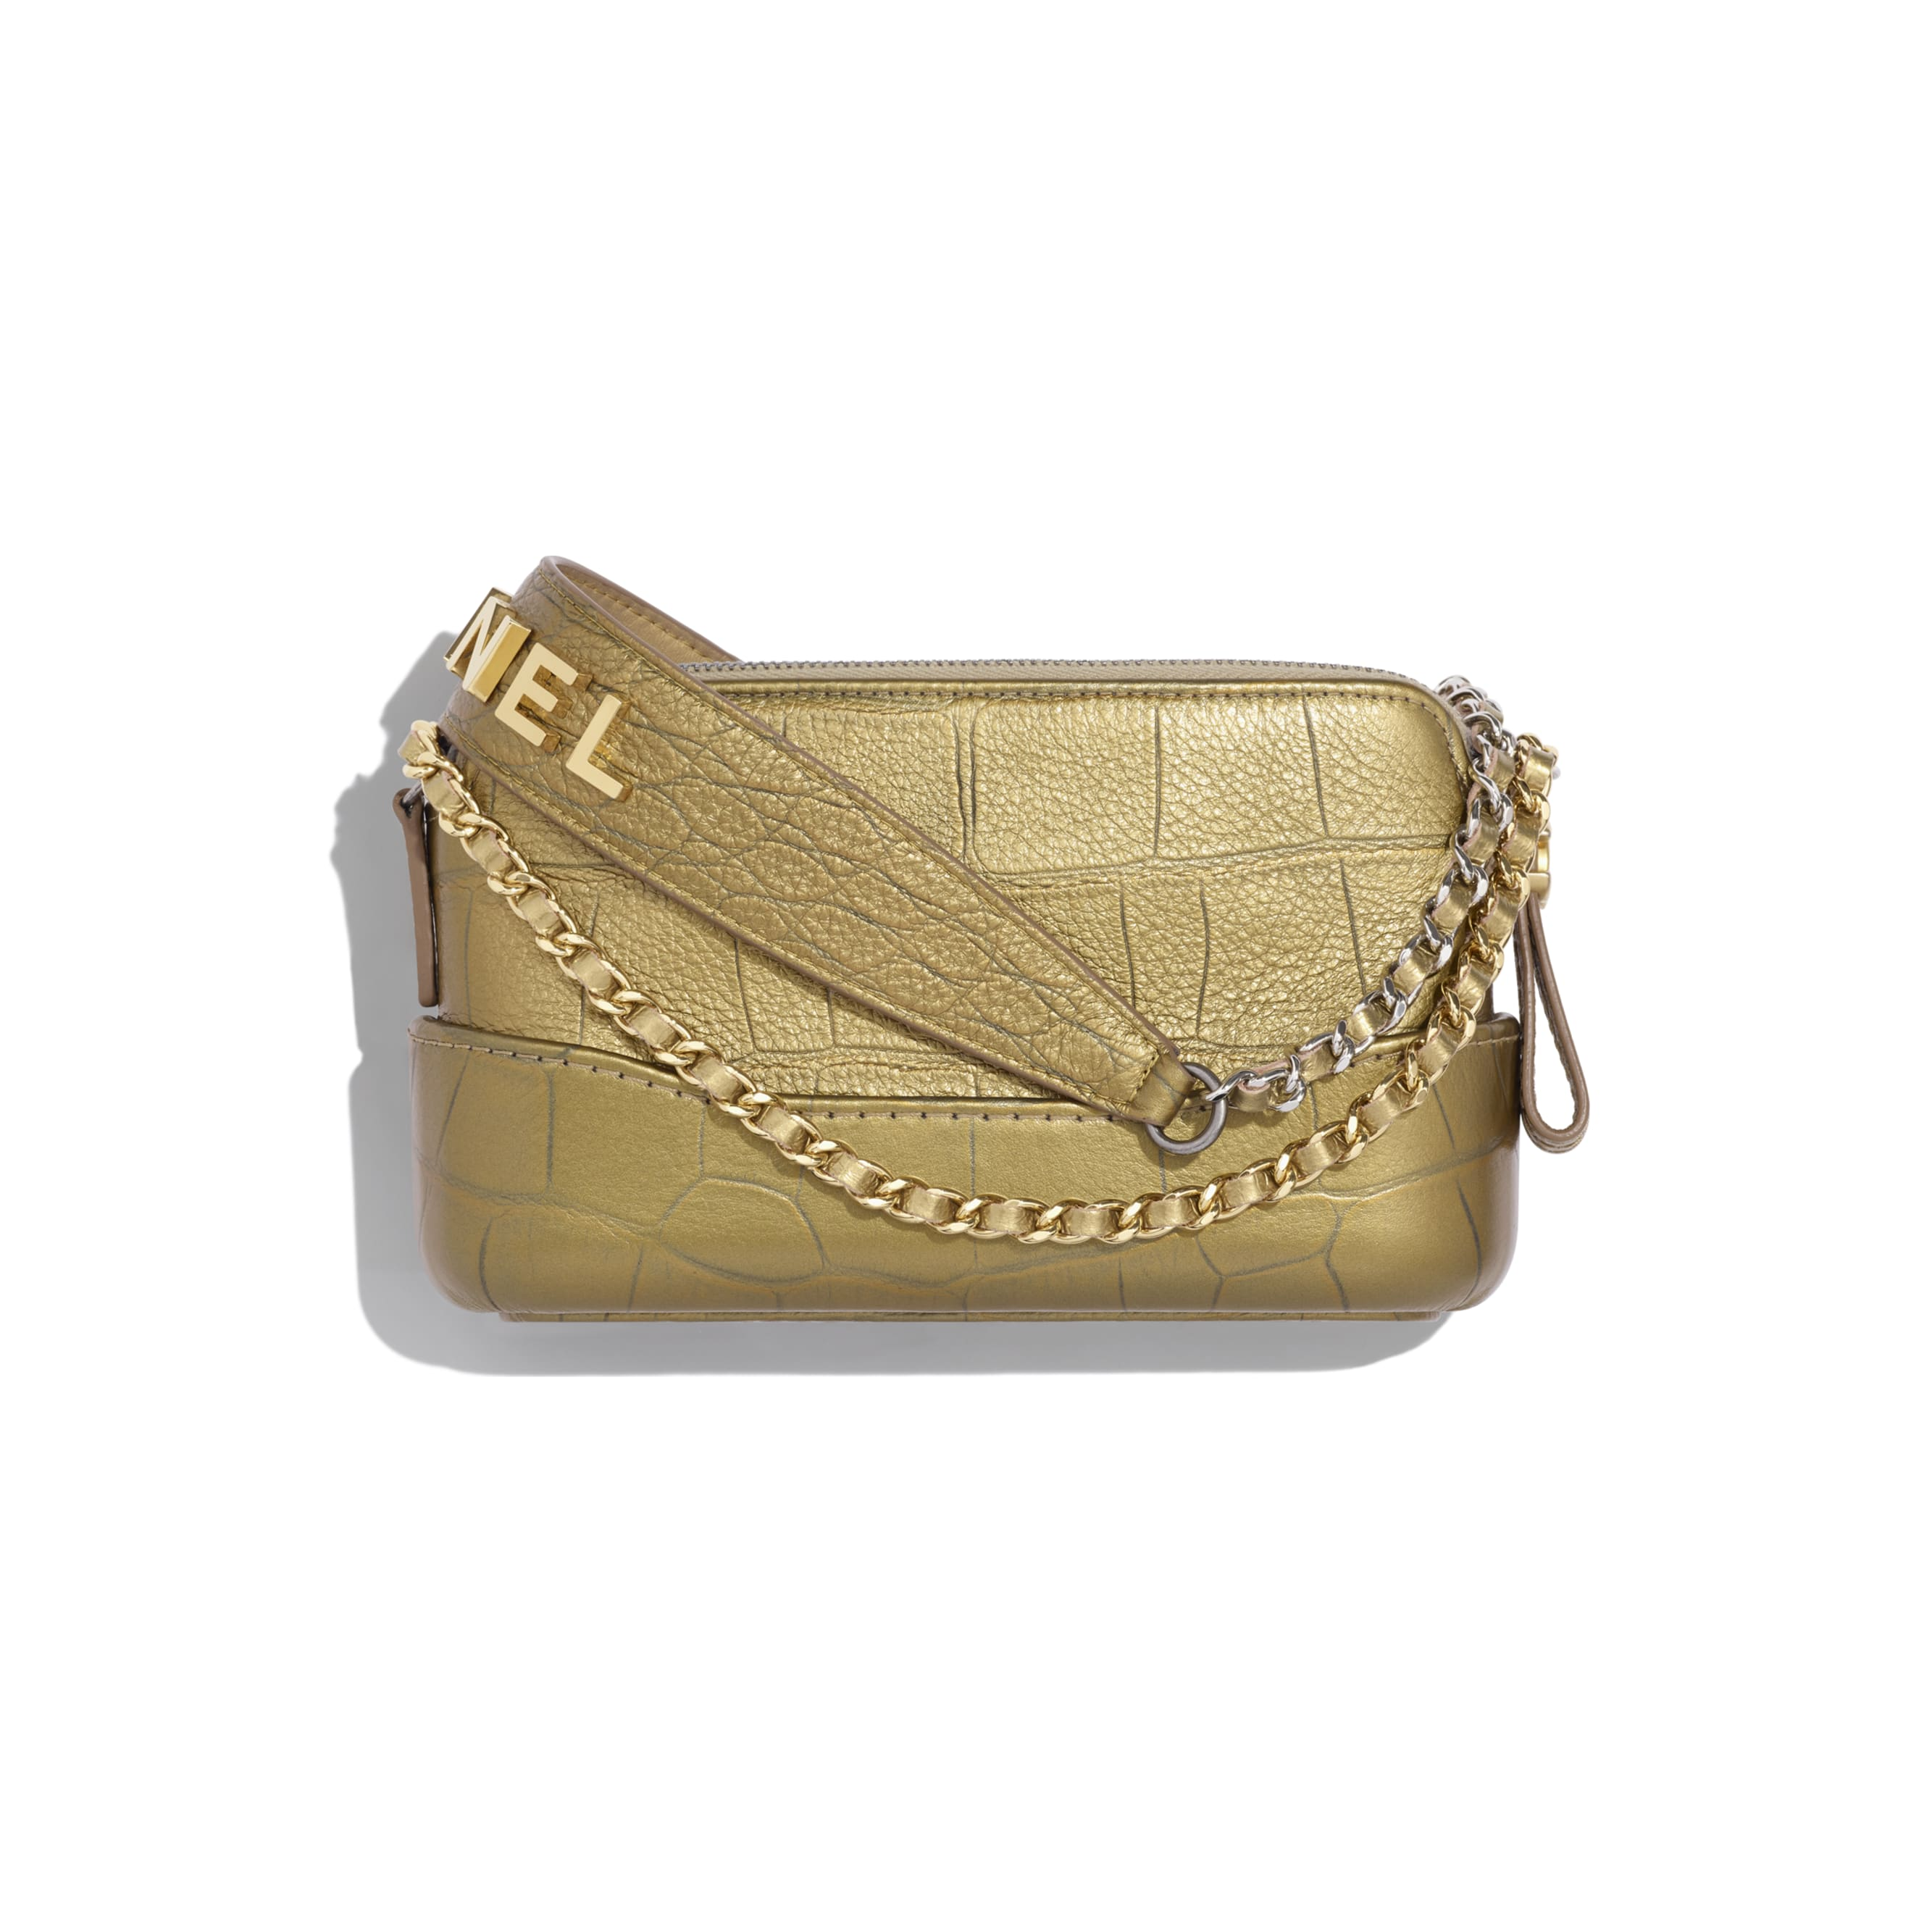 Clutch With Chain - Gold - Metallic Crocodile Embossed Calfskin, Gold-Tone & Silver-Tone Metal - CHANEL - Alternative view - see standard sized version